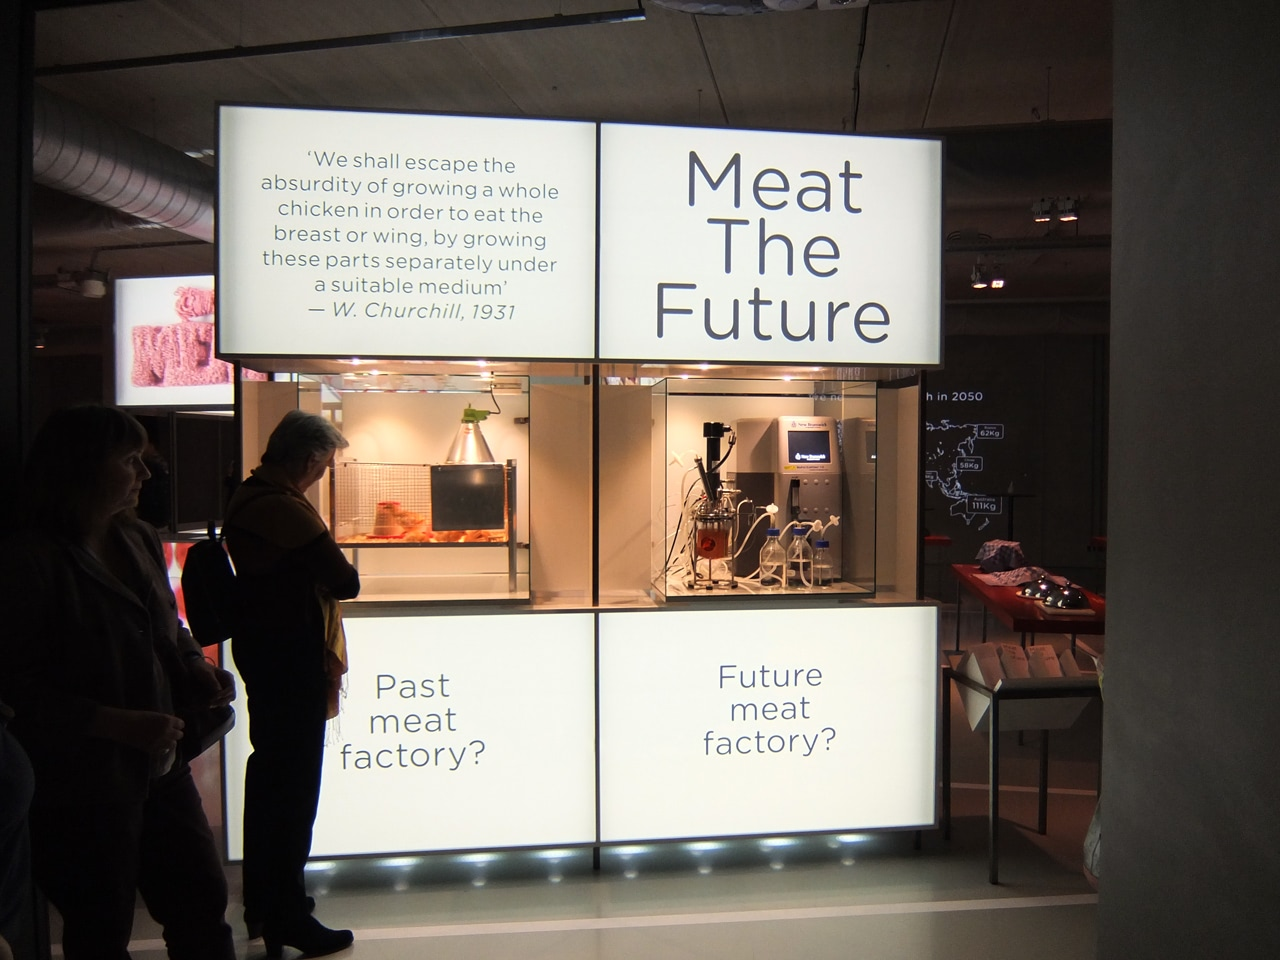 From October 11 to June 11 we will discuss the future of meat at Cube Deign Museum in Kerkrade (The Netherlands) with the exhibition Meat the Future.